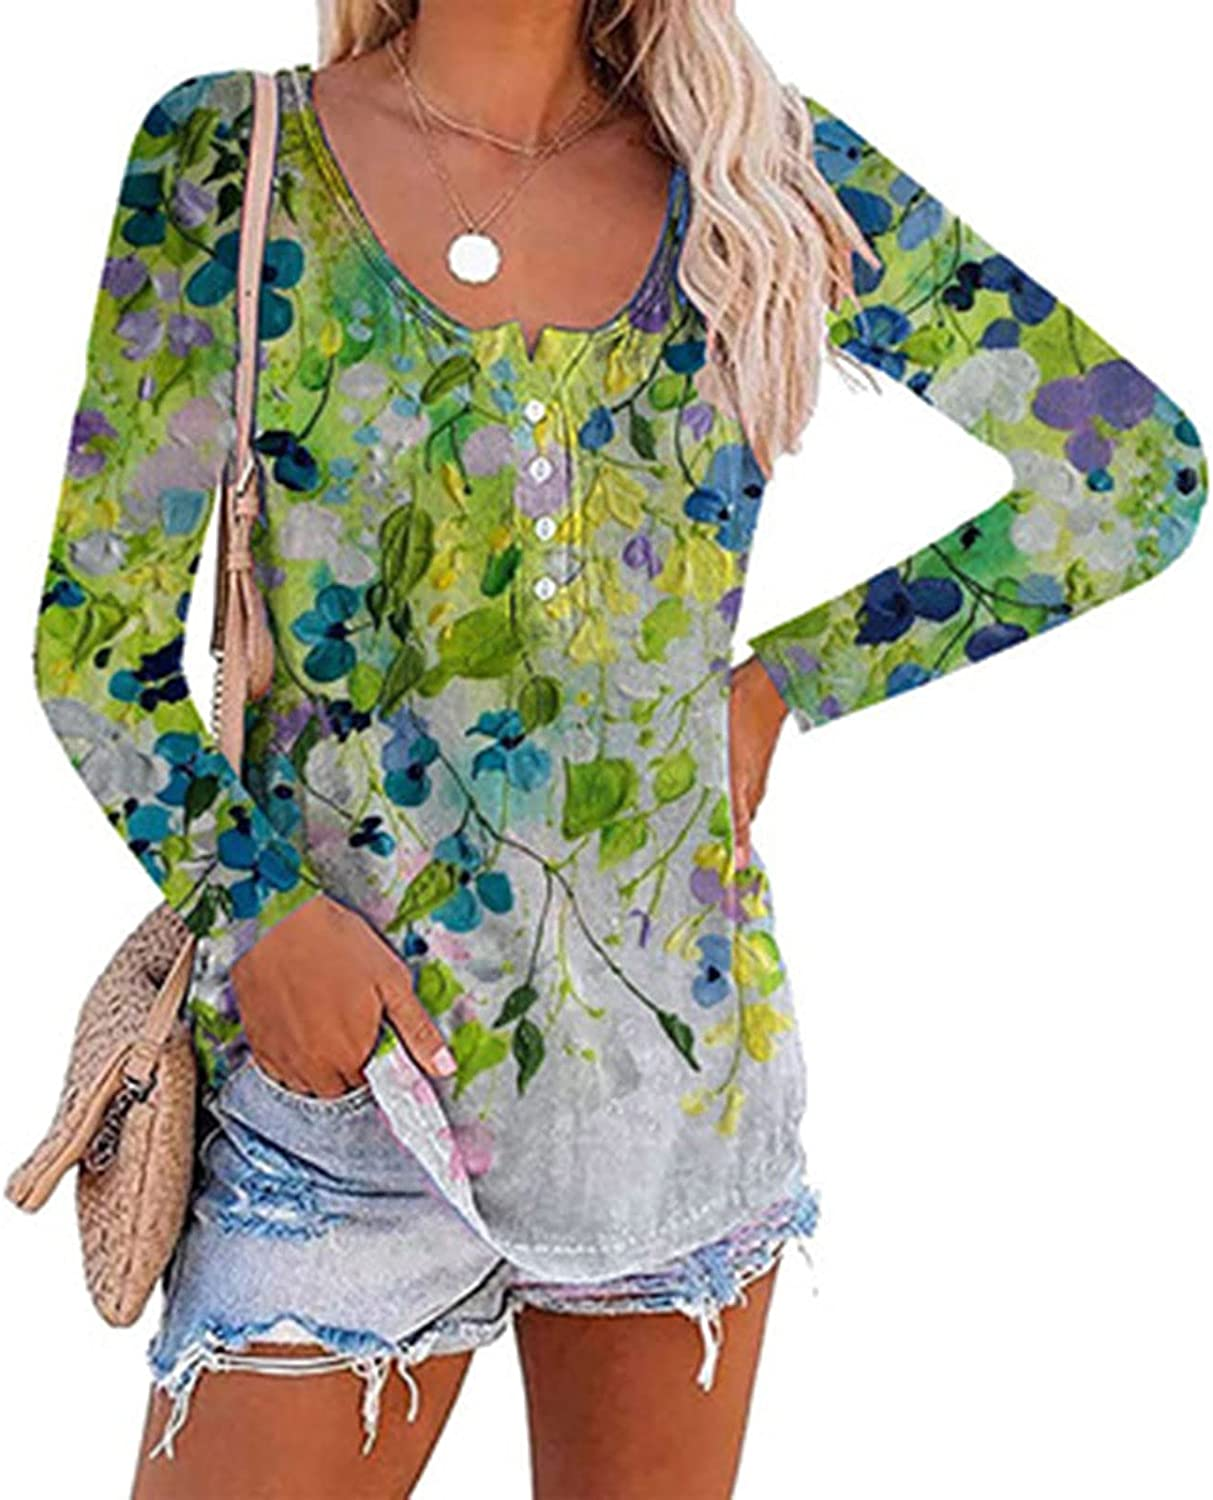 Casual Shirts for Women Floral Print Long Sleeve O-Neck T-Shirts Blouses Plus Size Leisure Tee Top Fall Clothes